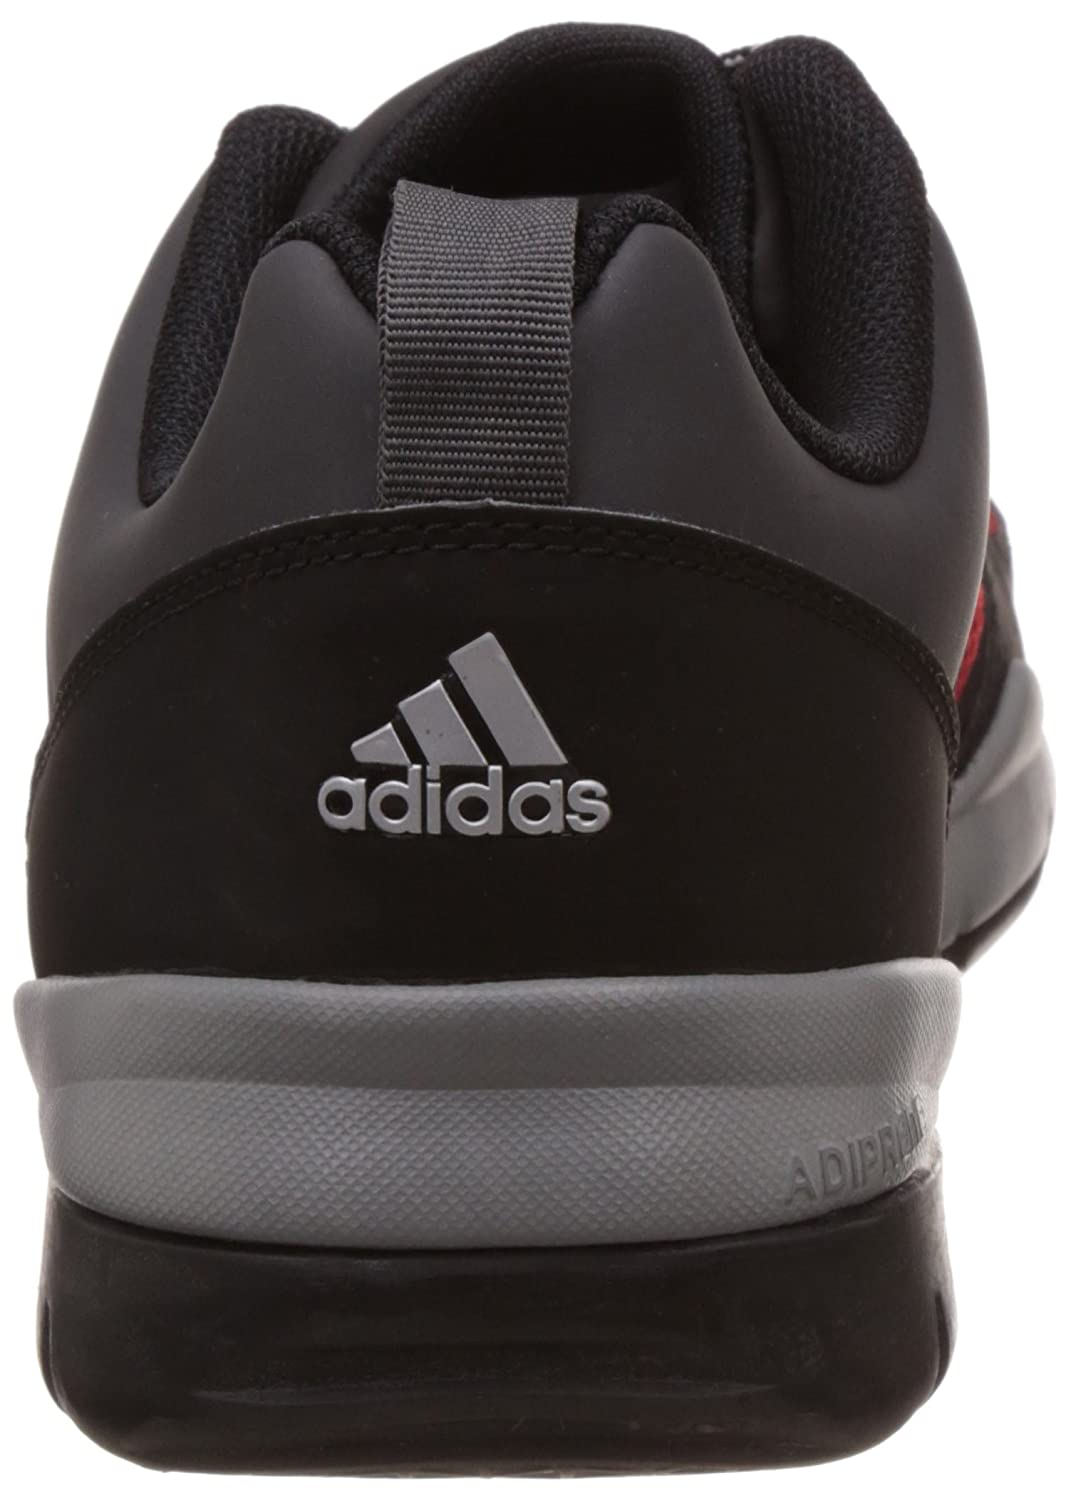 adidas for men shoes